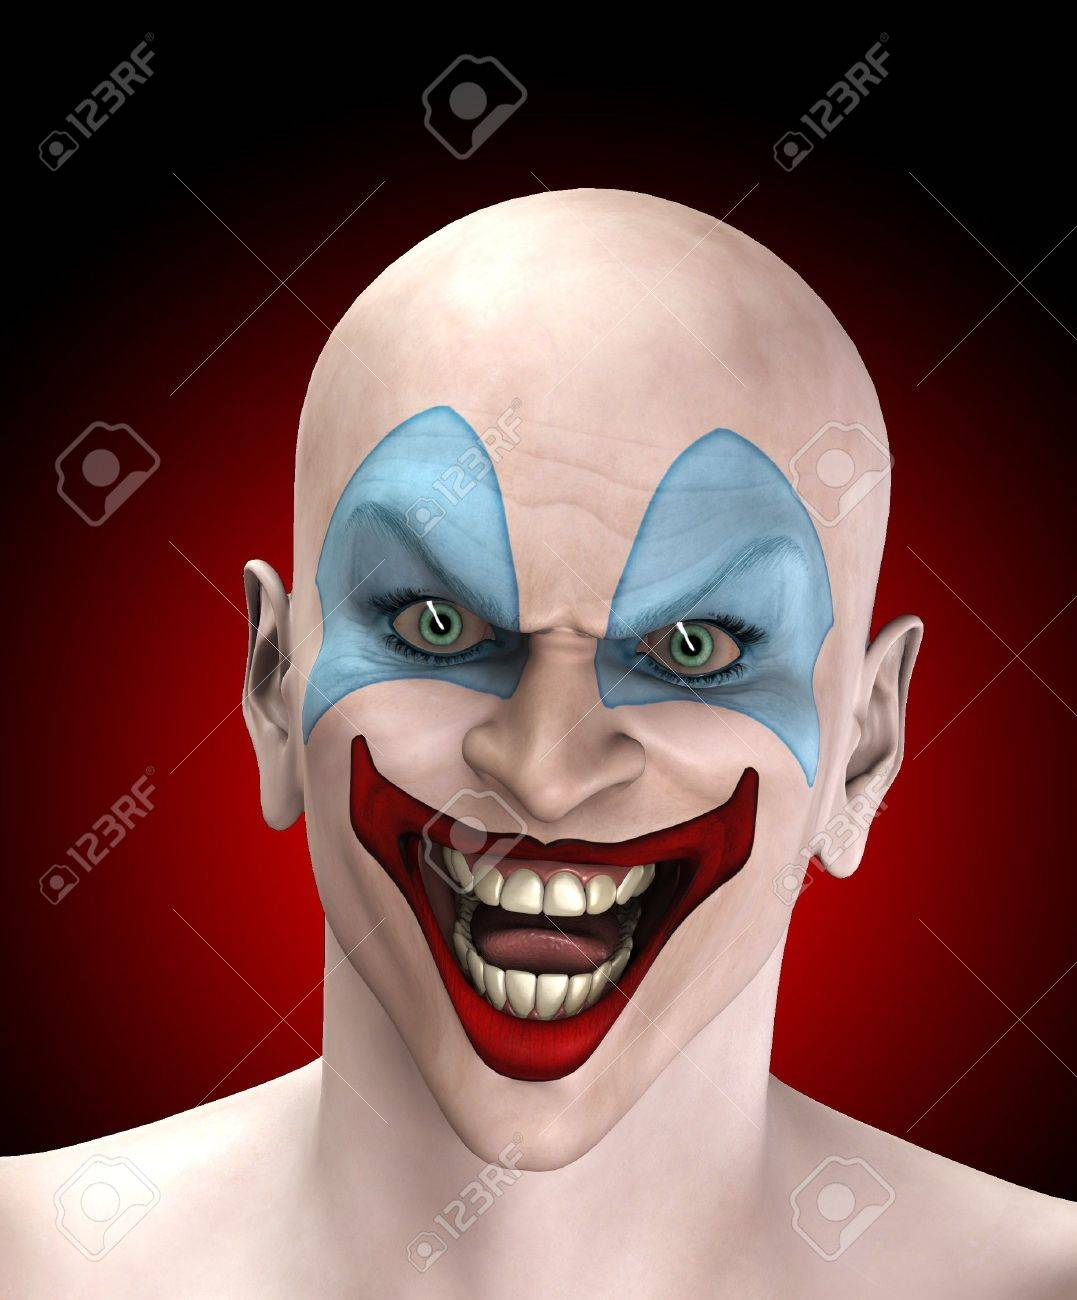 An very evil looking clown for Halloween. Stock Photo - 7768246